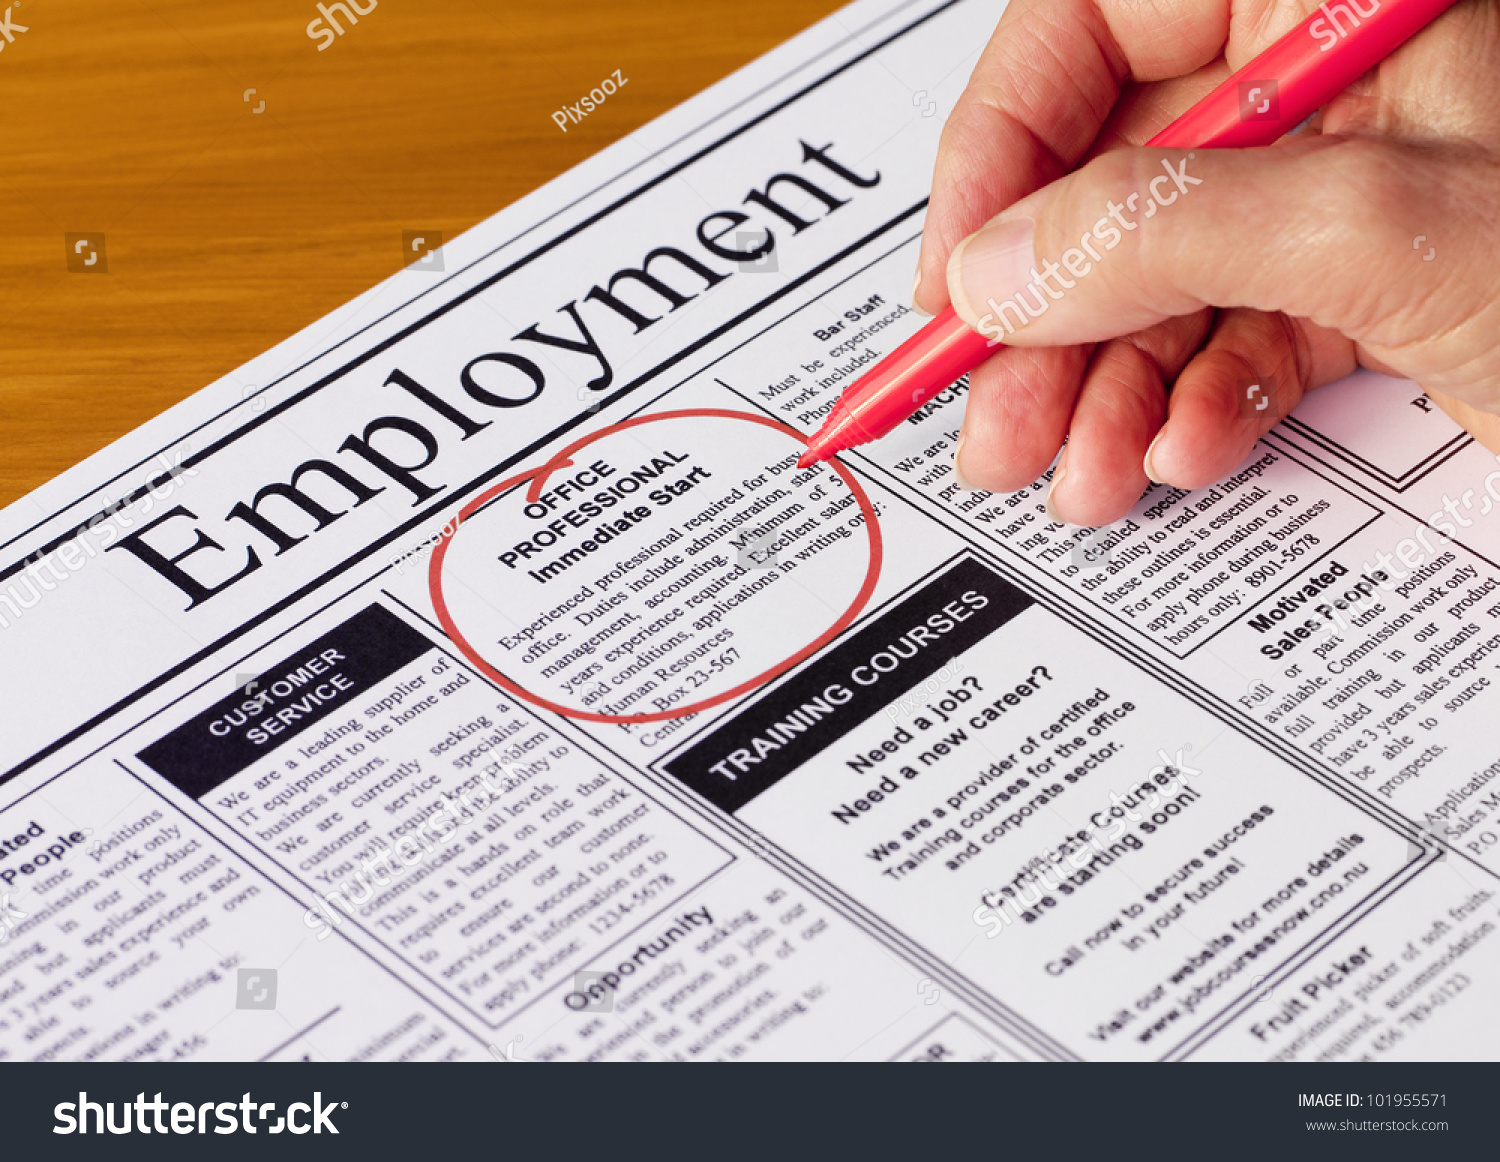 finding job employment section newspaper newspaper stock photo finding a job in the employment section of the newspaper newspaper created by photographer